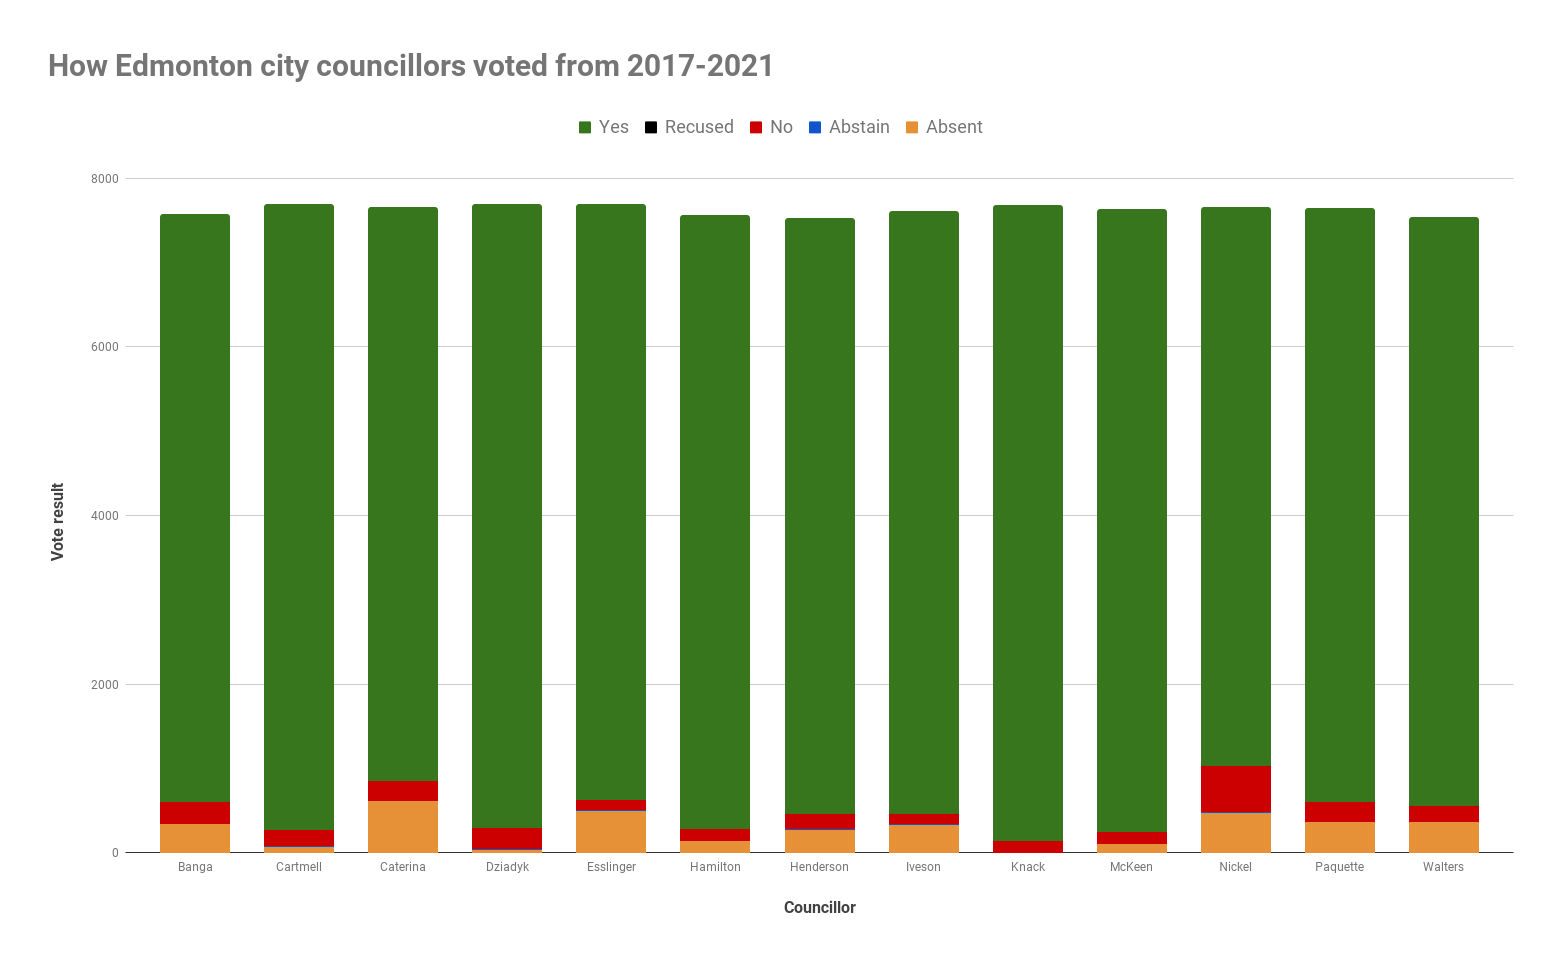 A chart depicting how Edmonton city councillors voted from 2017-2021.